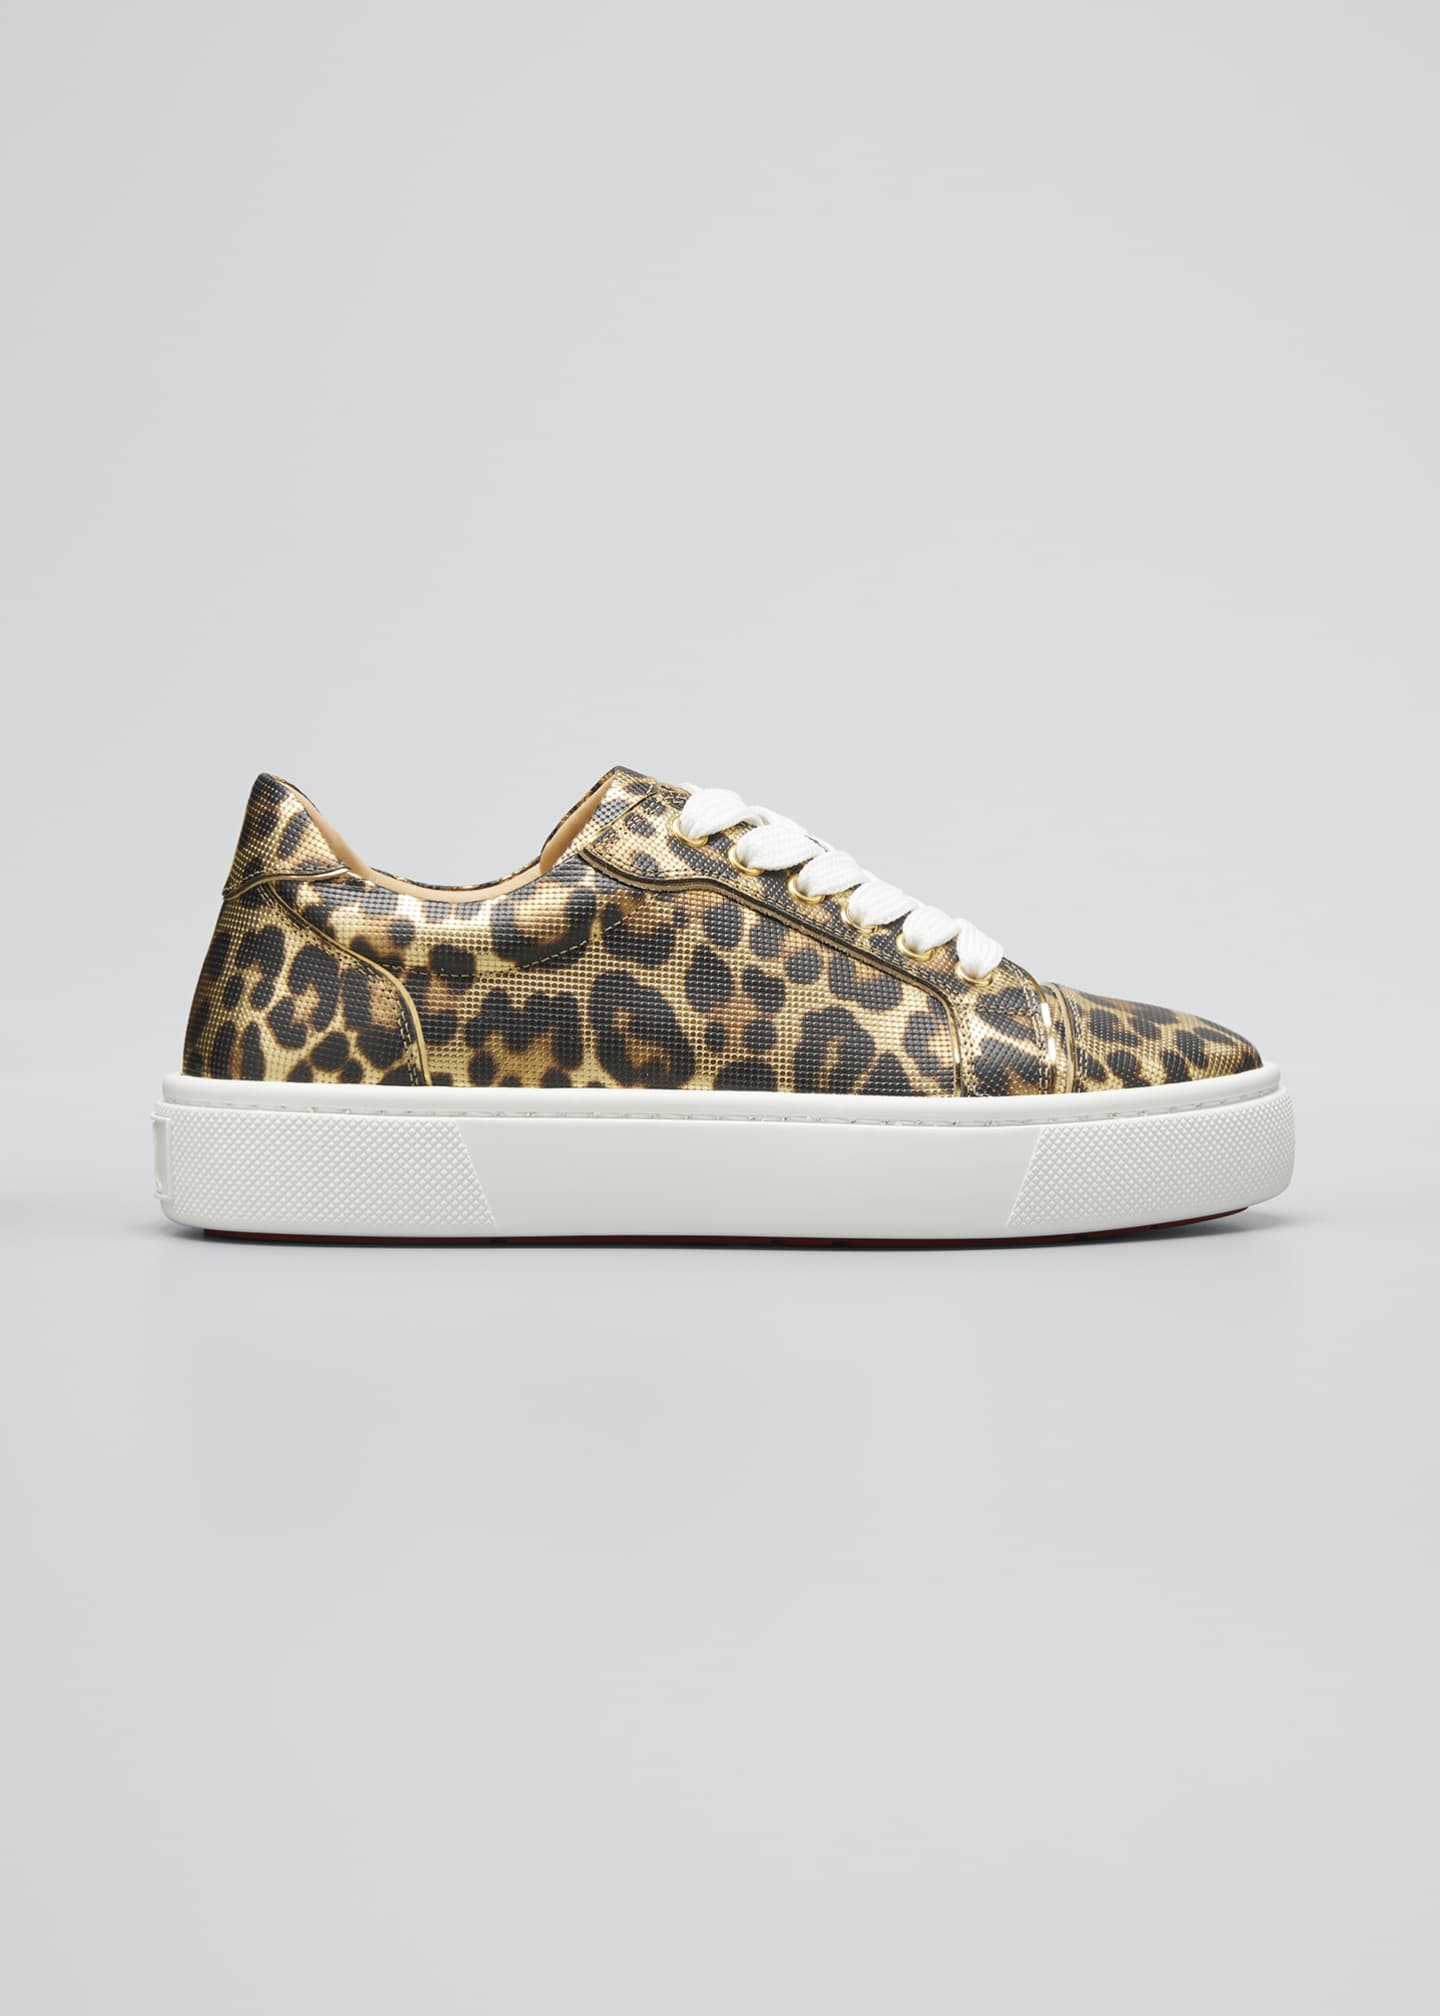 Image 1 of 3: Vierissima Leopard Red Sole Sneakers